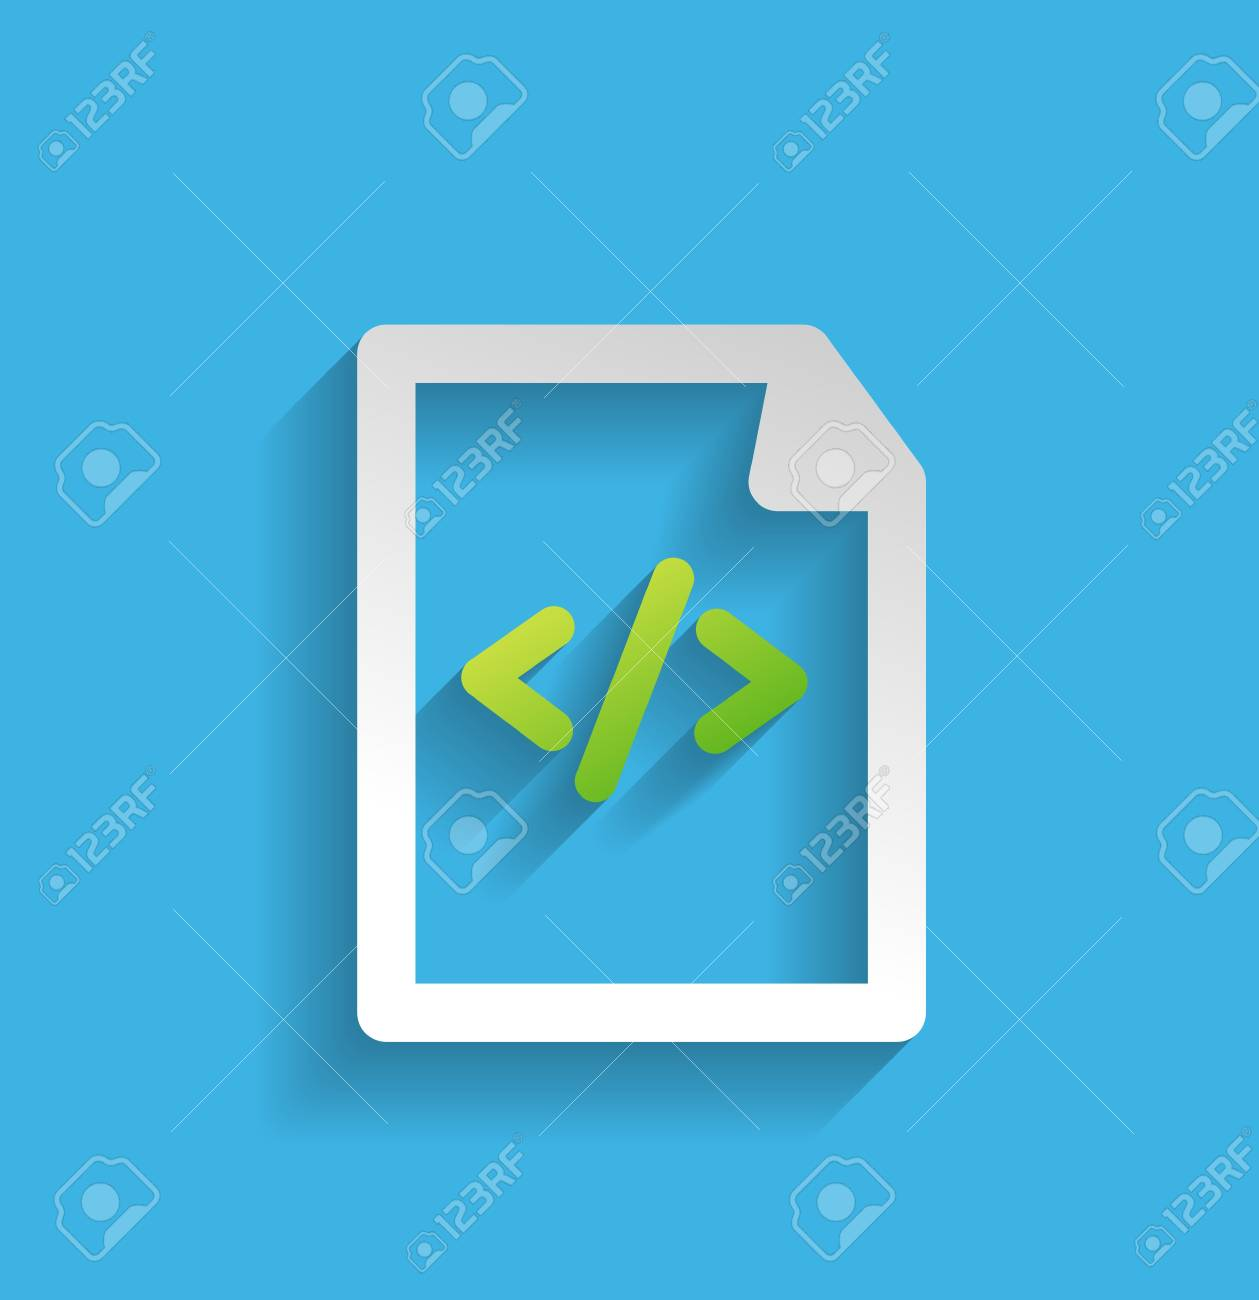 file / program flat icon Stock Vector - 21220456